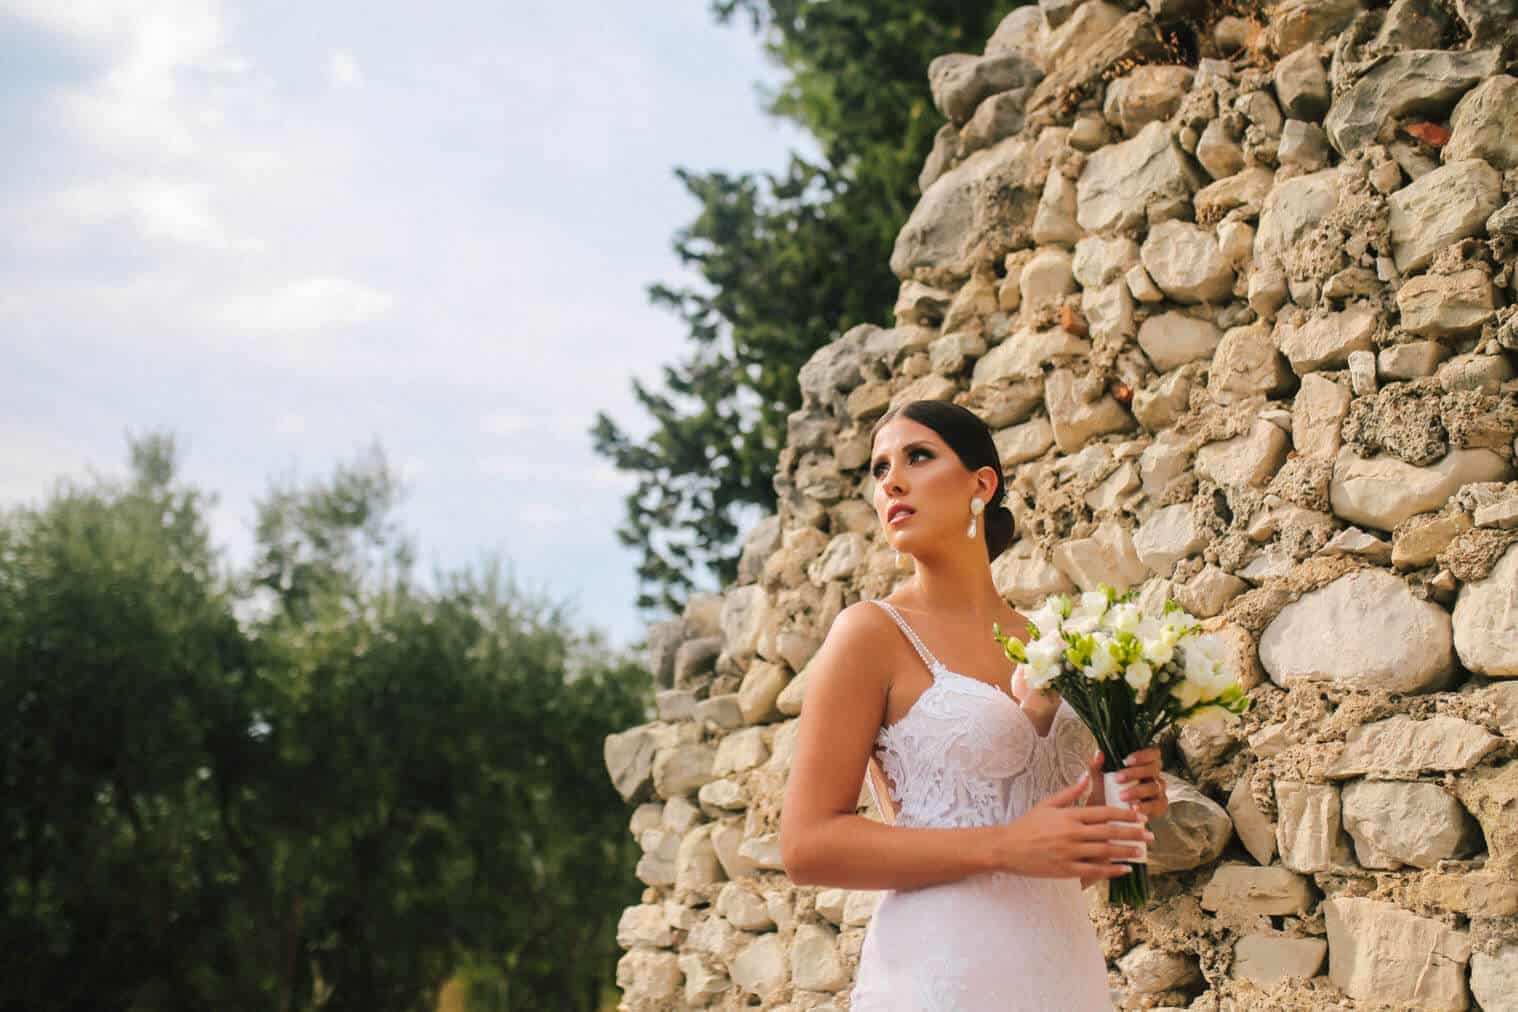 Wedding reception and photoshooting on salona site 033 | Croatia Elopement Photographer and Videographer